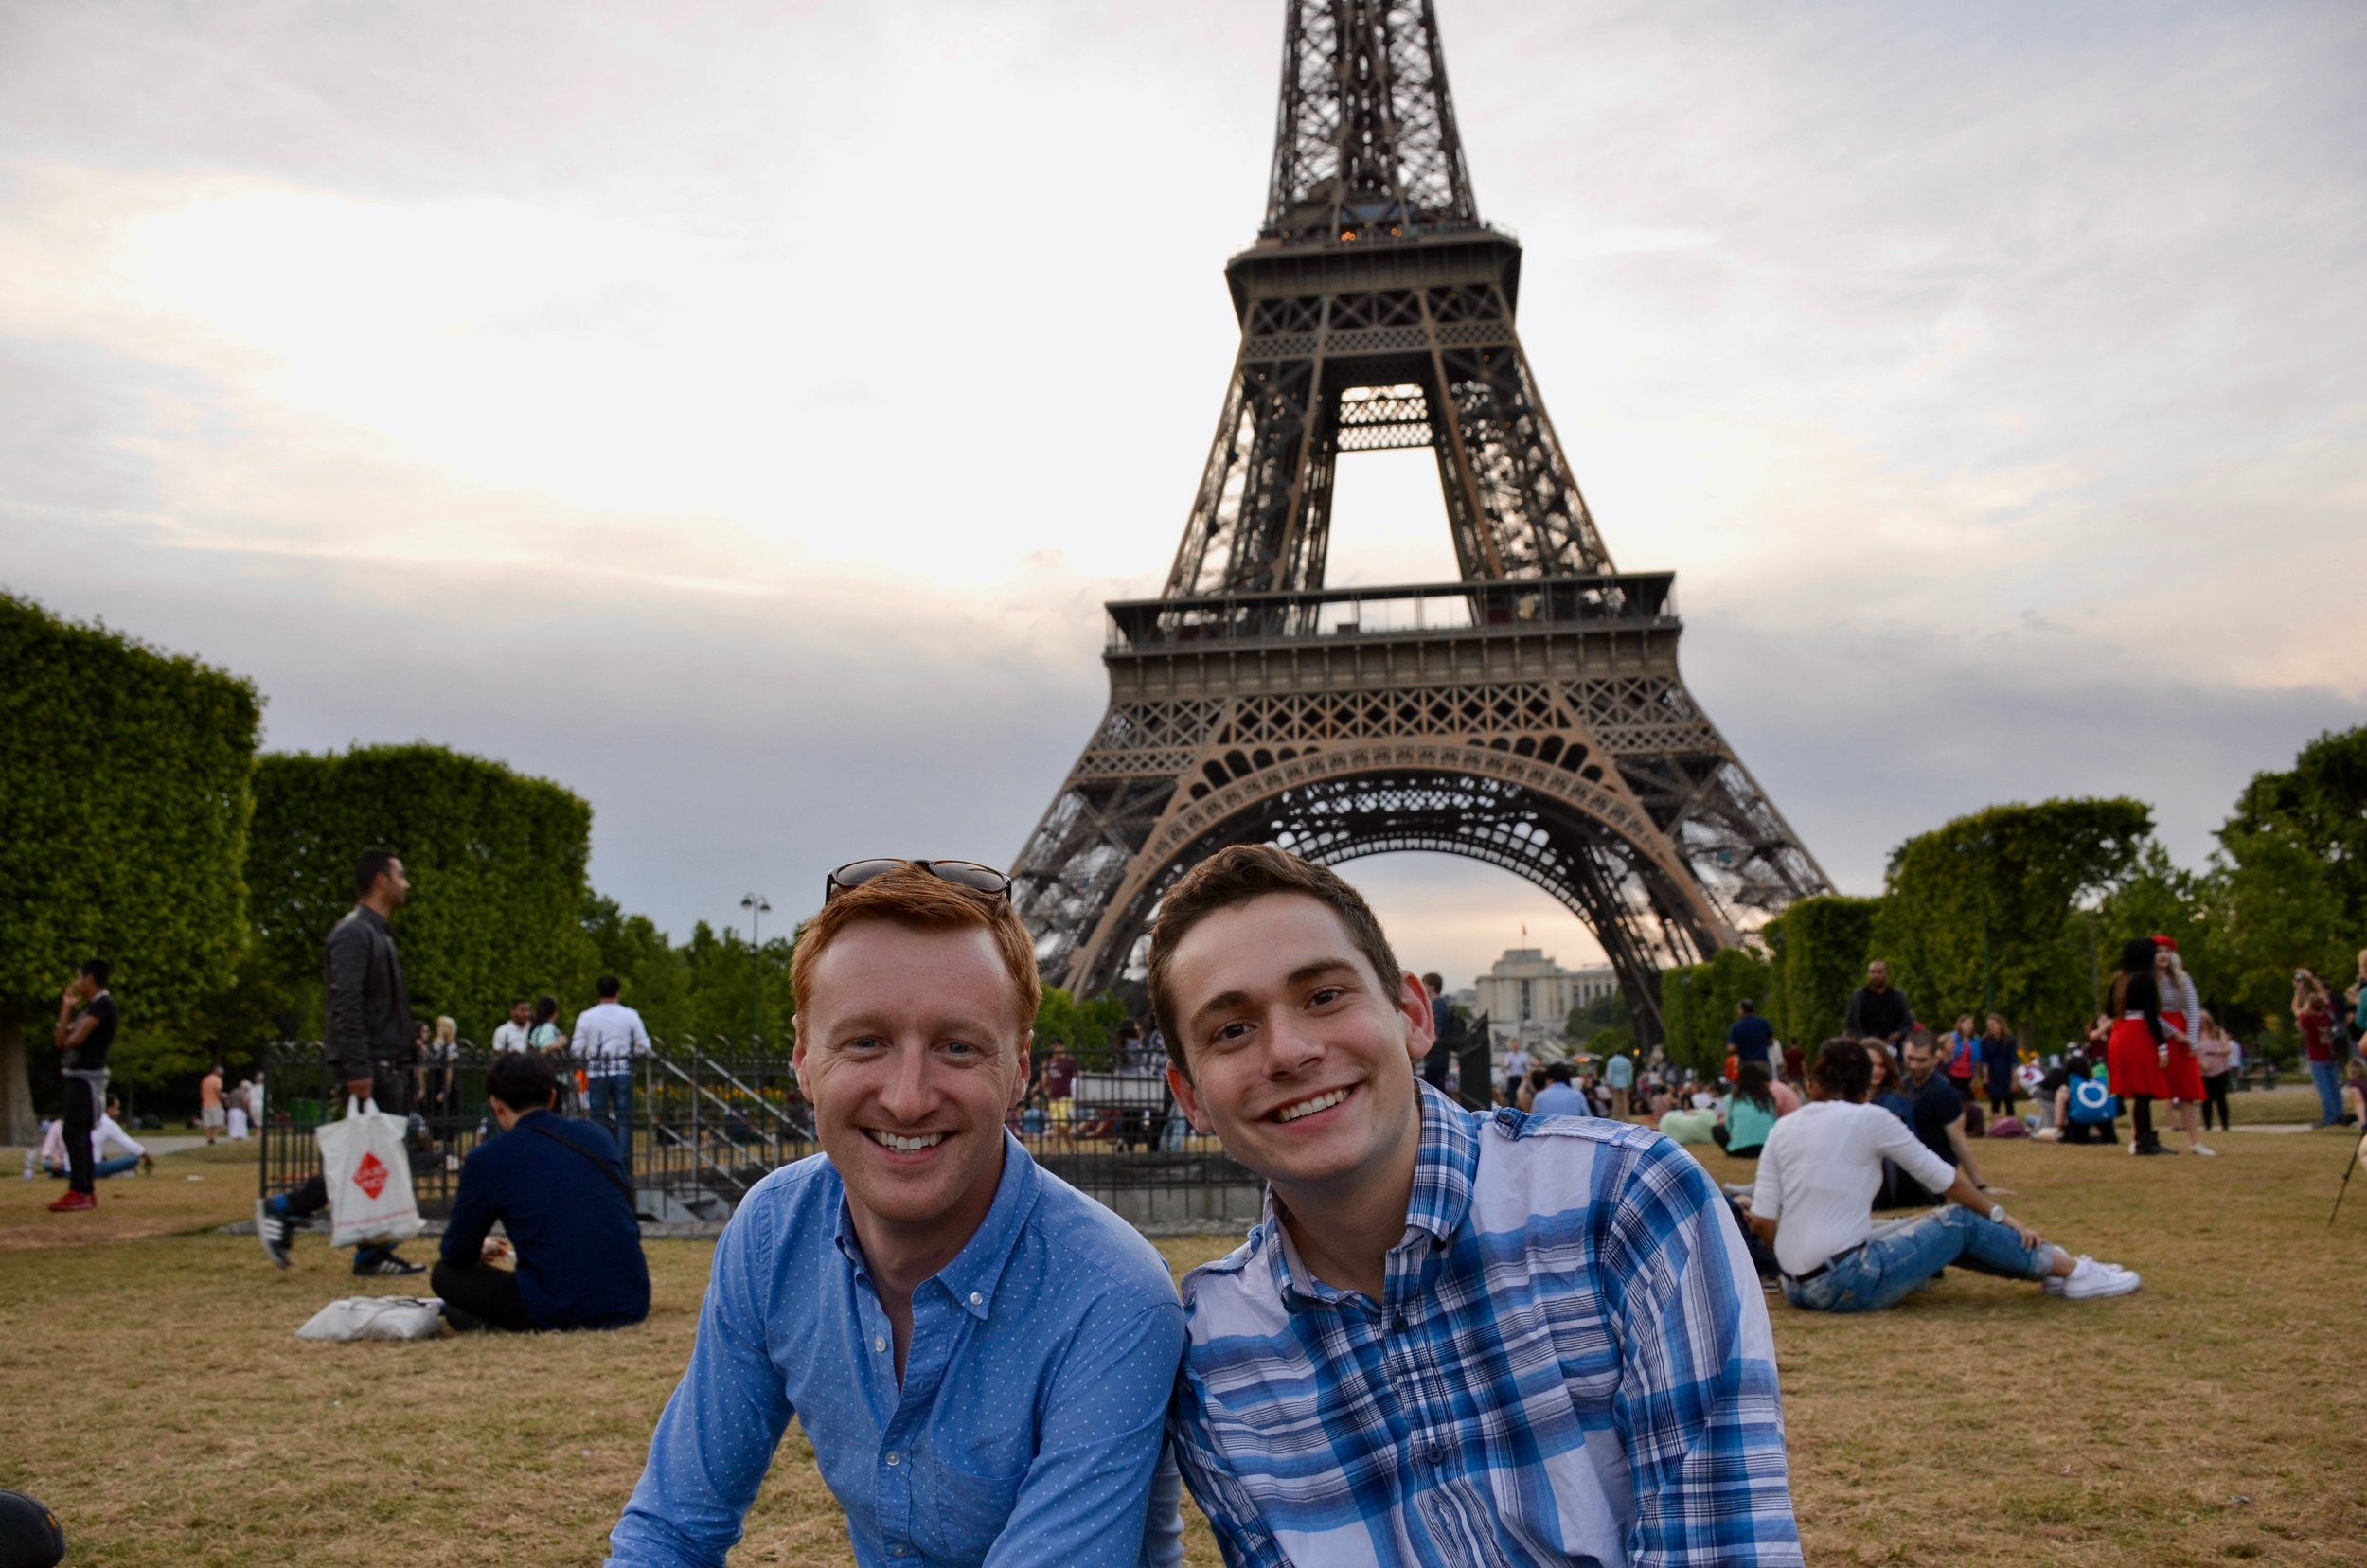 Jon Ortloff and David von Behren enjoying the Eiffel Tower before the Boston Organ Studio picnic